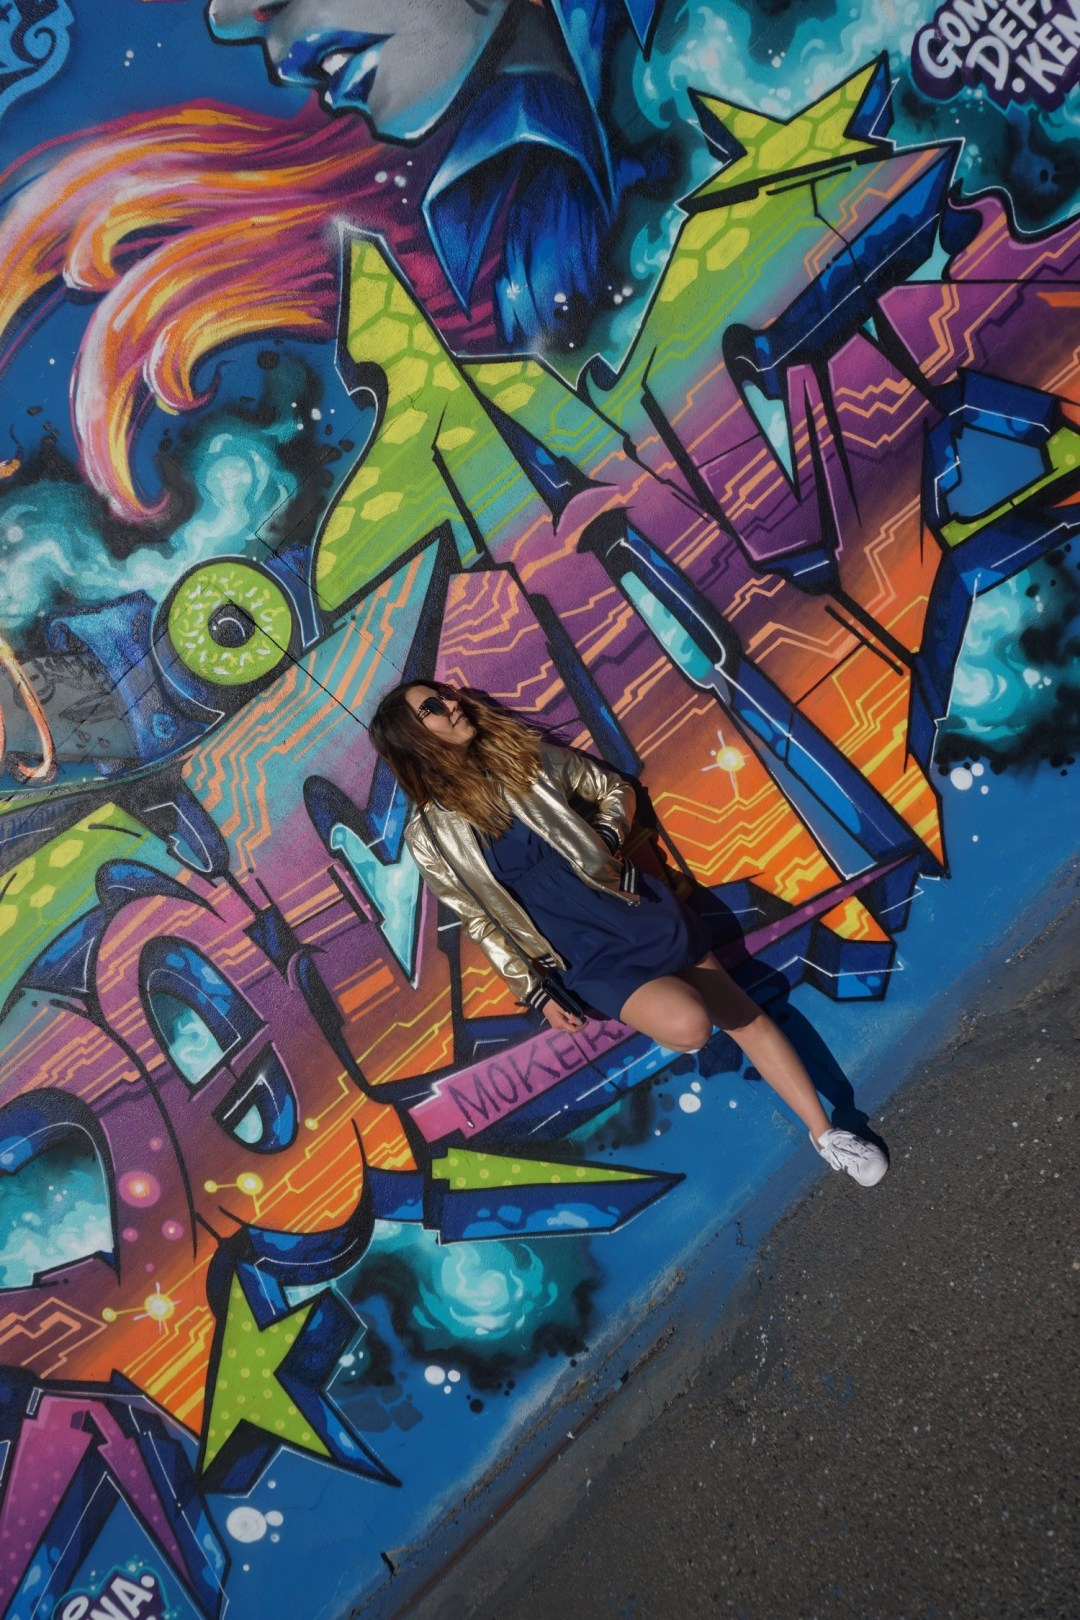 LOOK SPORTWEAR CHIC GOLD SHOOTING PHOTO BLOG MODE BLOGUEUSE BORDEAUX STREET ART BACALAN 14